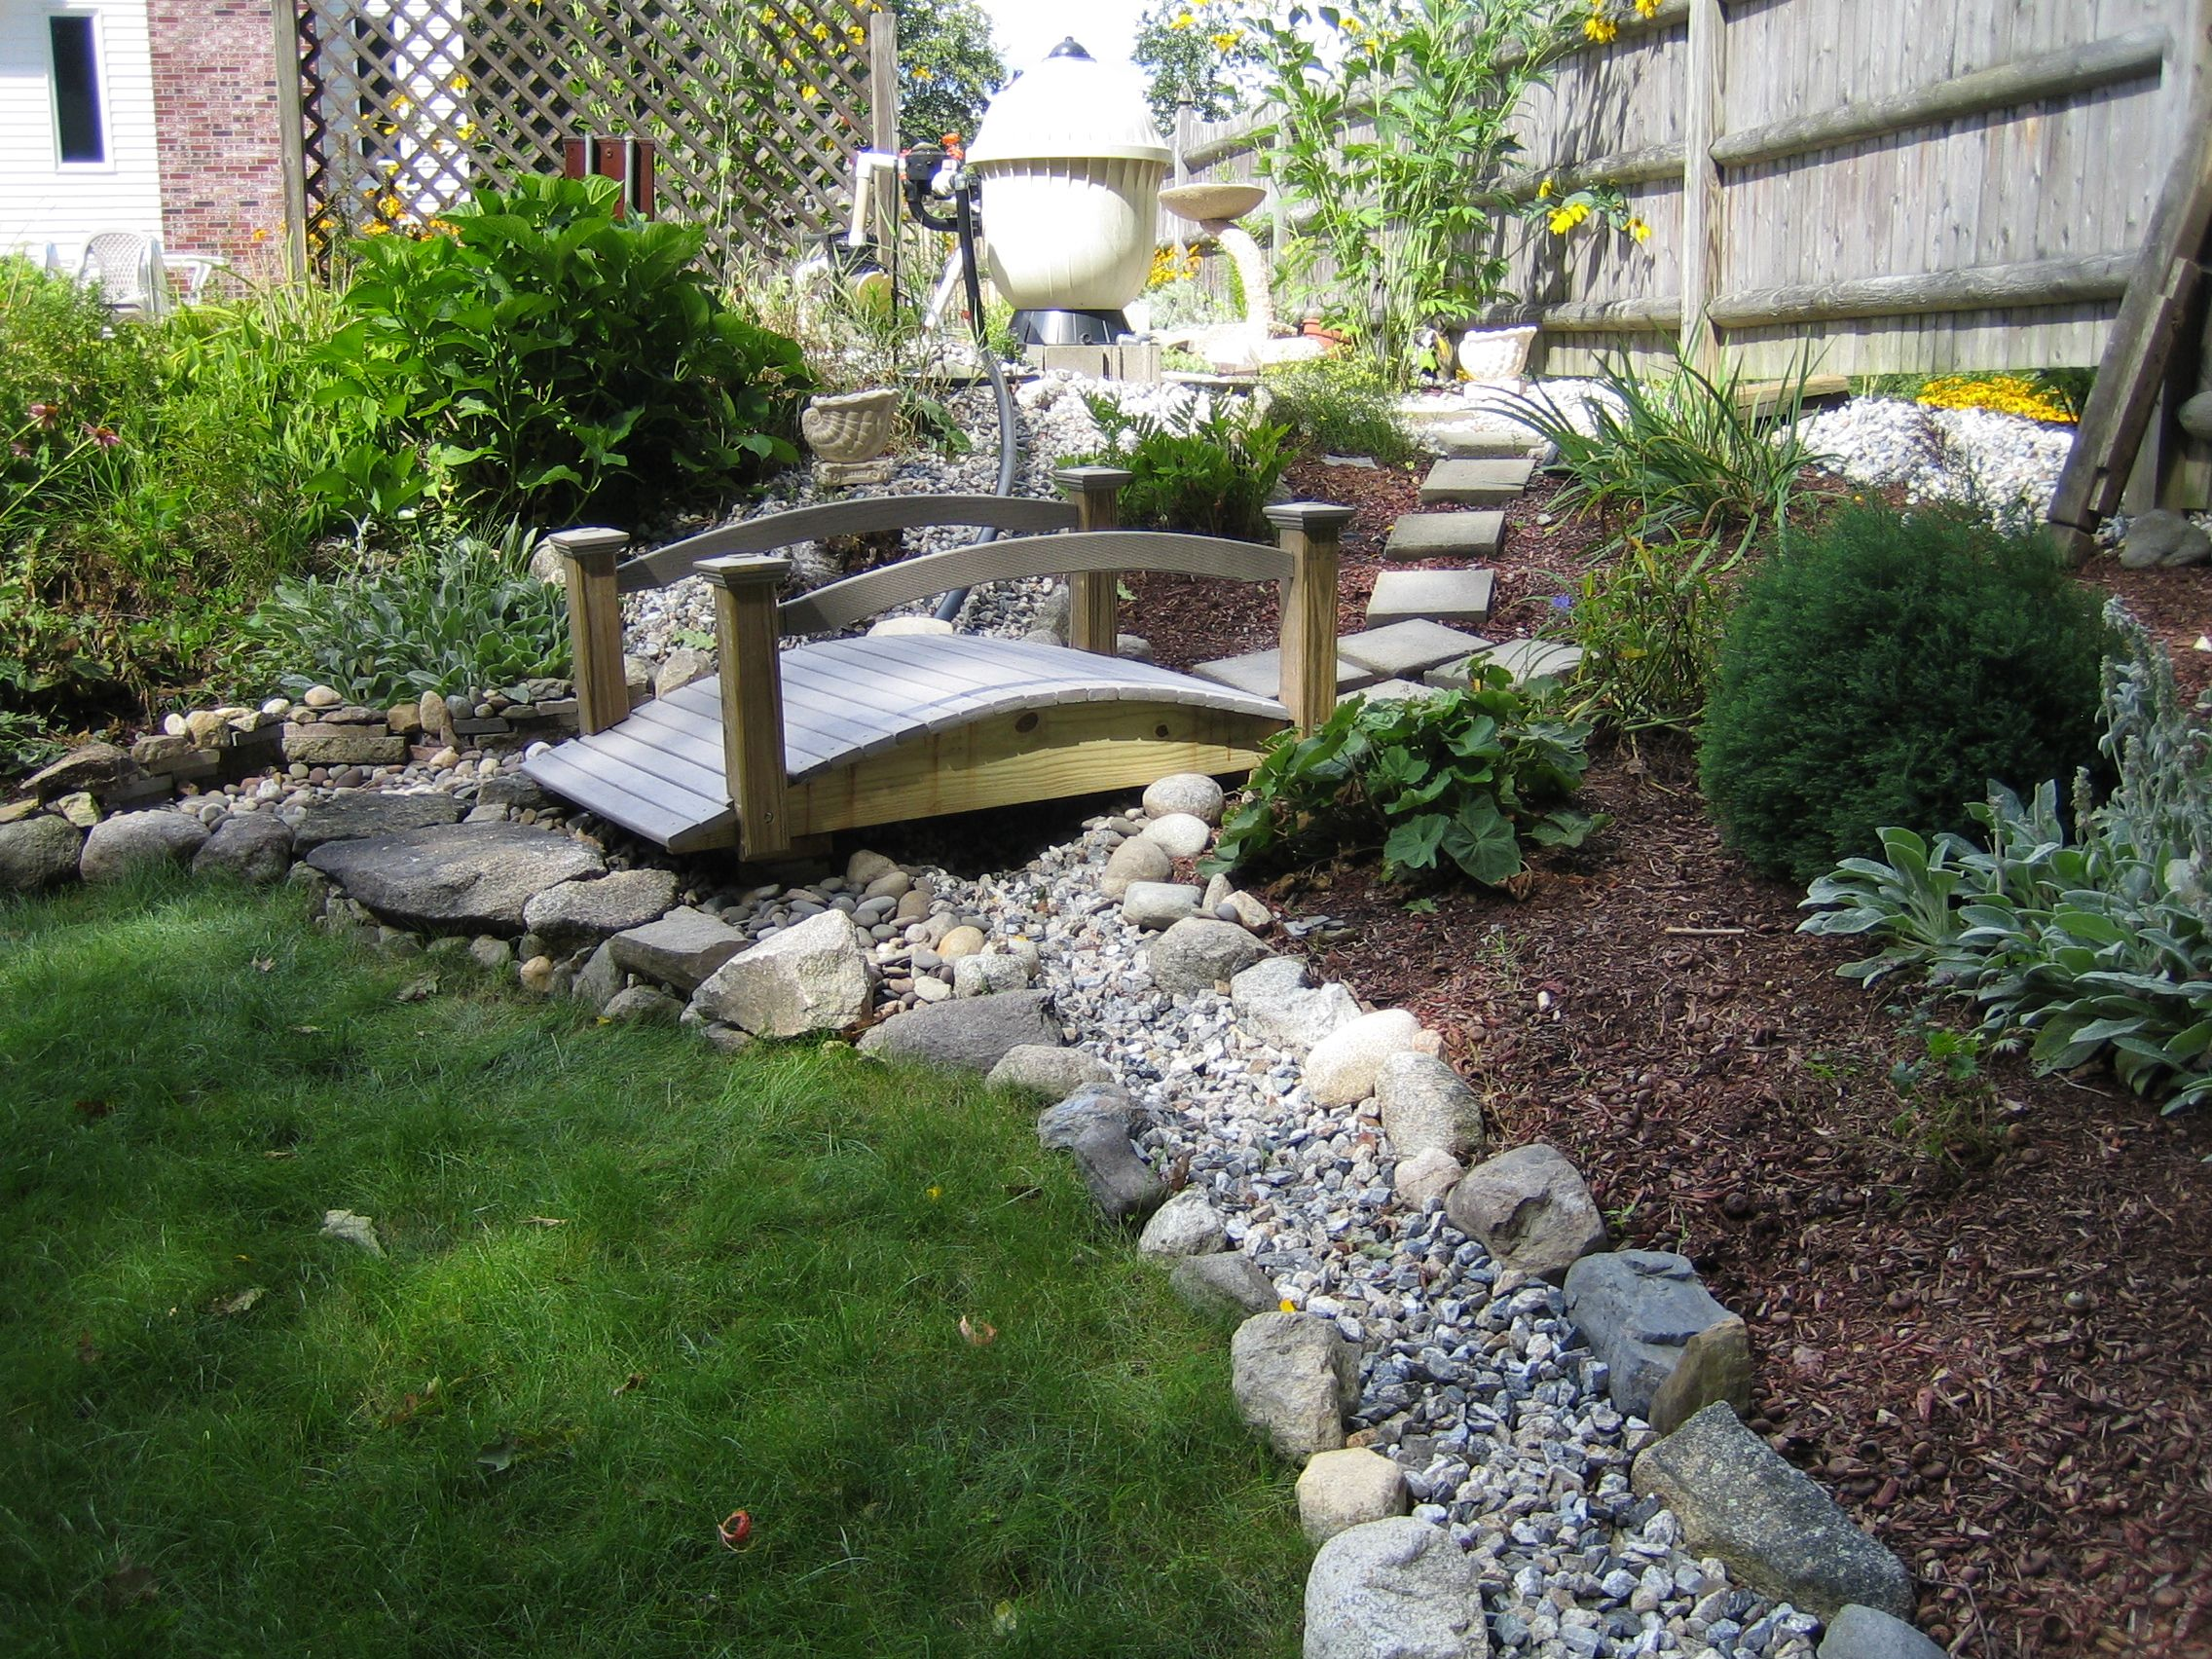 Dry River Bed To Direct Waste Water Away From Lawn